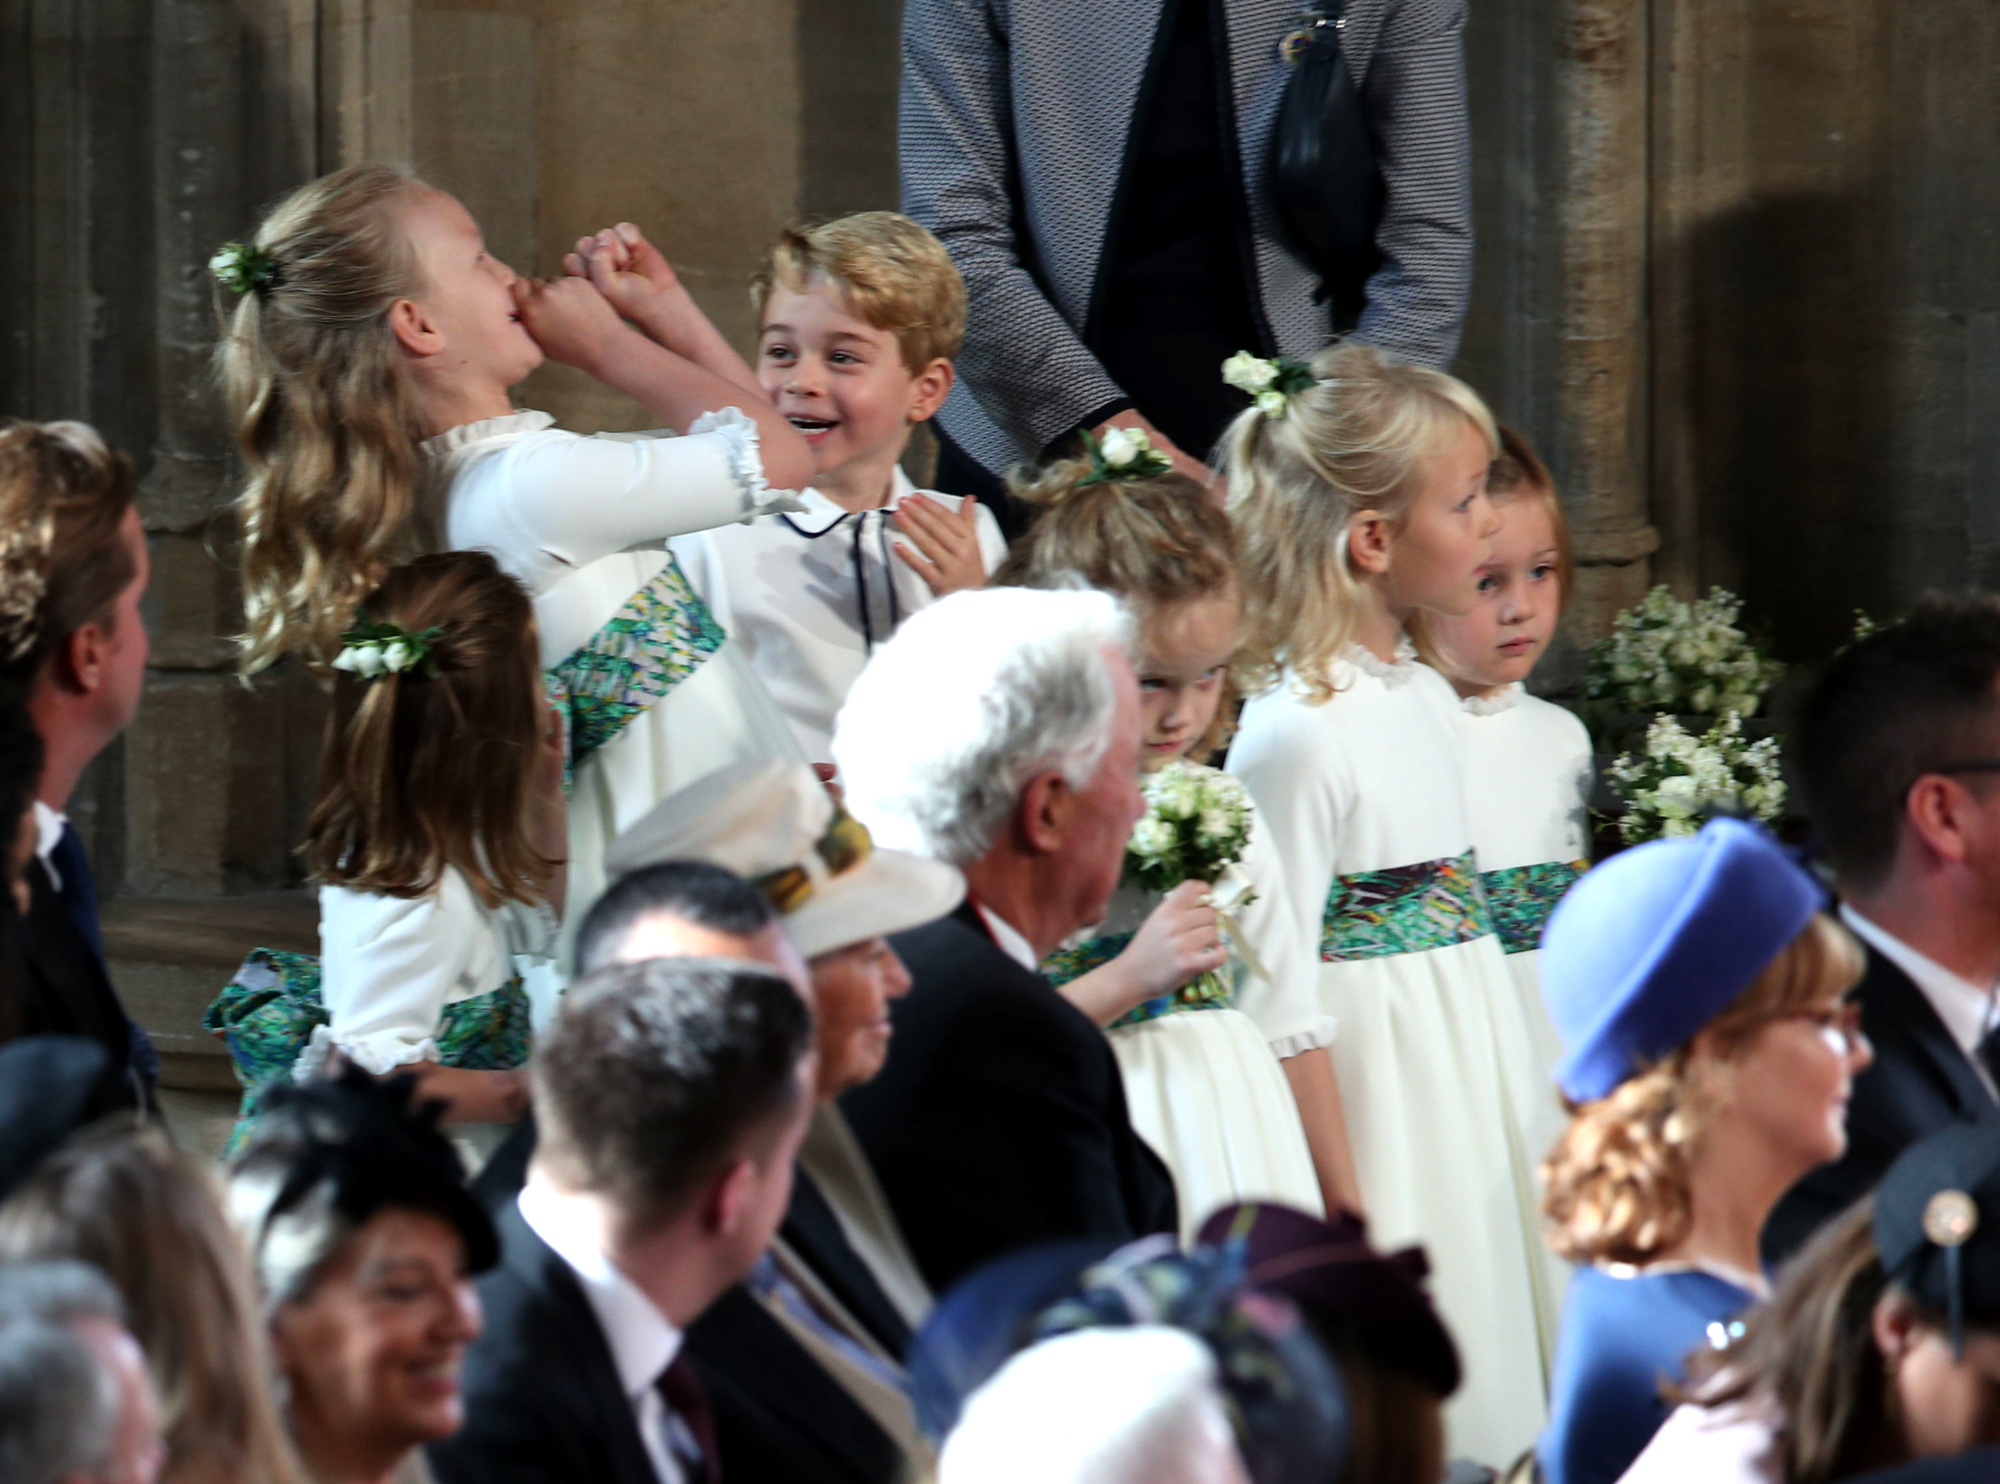 Prince George and Princess Charlotte Are Bridal Party Pros at Princess Eugenie's Wedding! children-laughing-1-2000